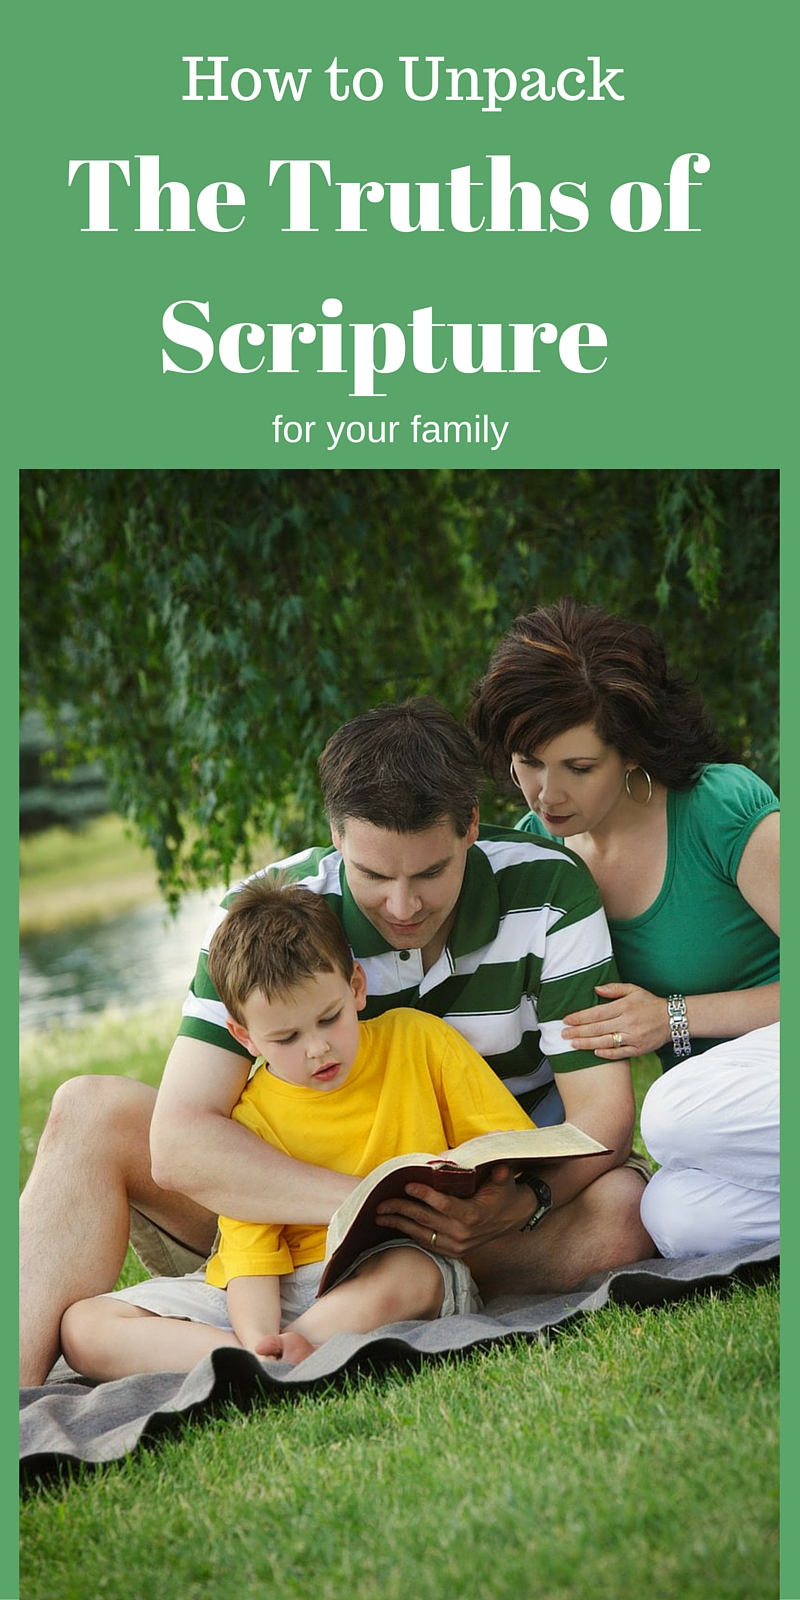 Making Time to Unpack the Truths of Scripture for Your Family